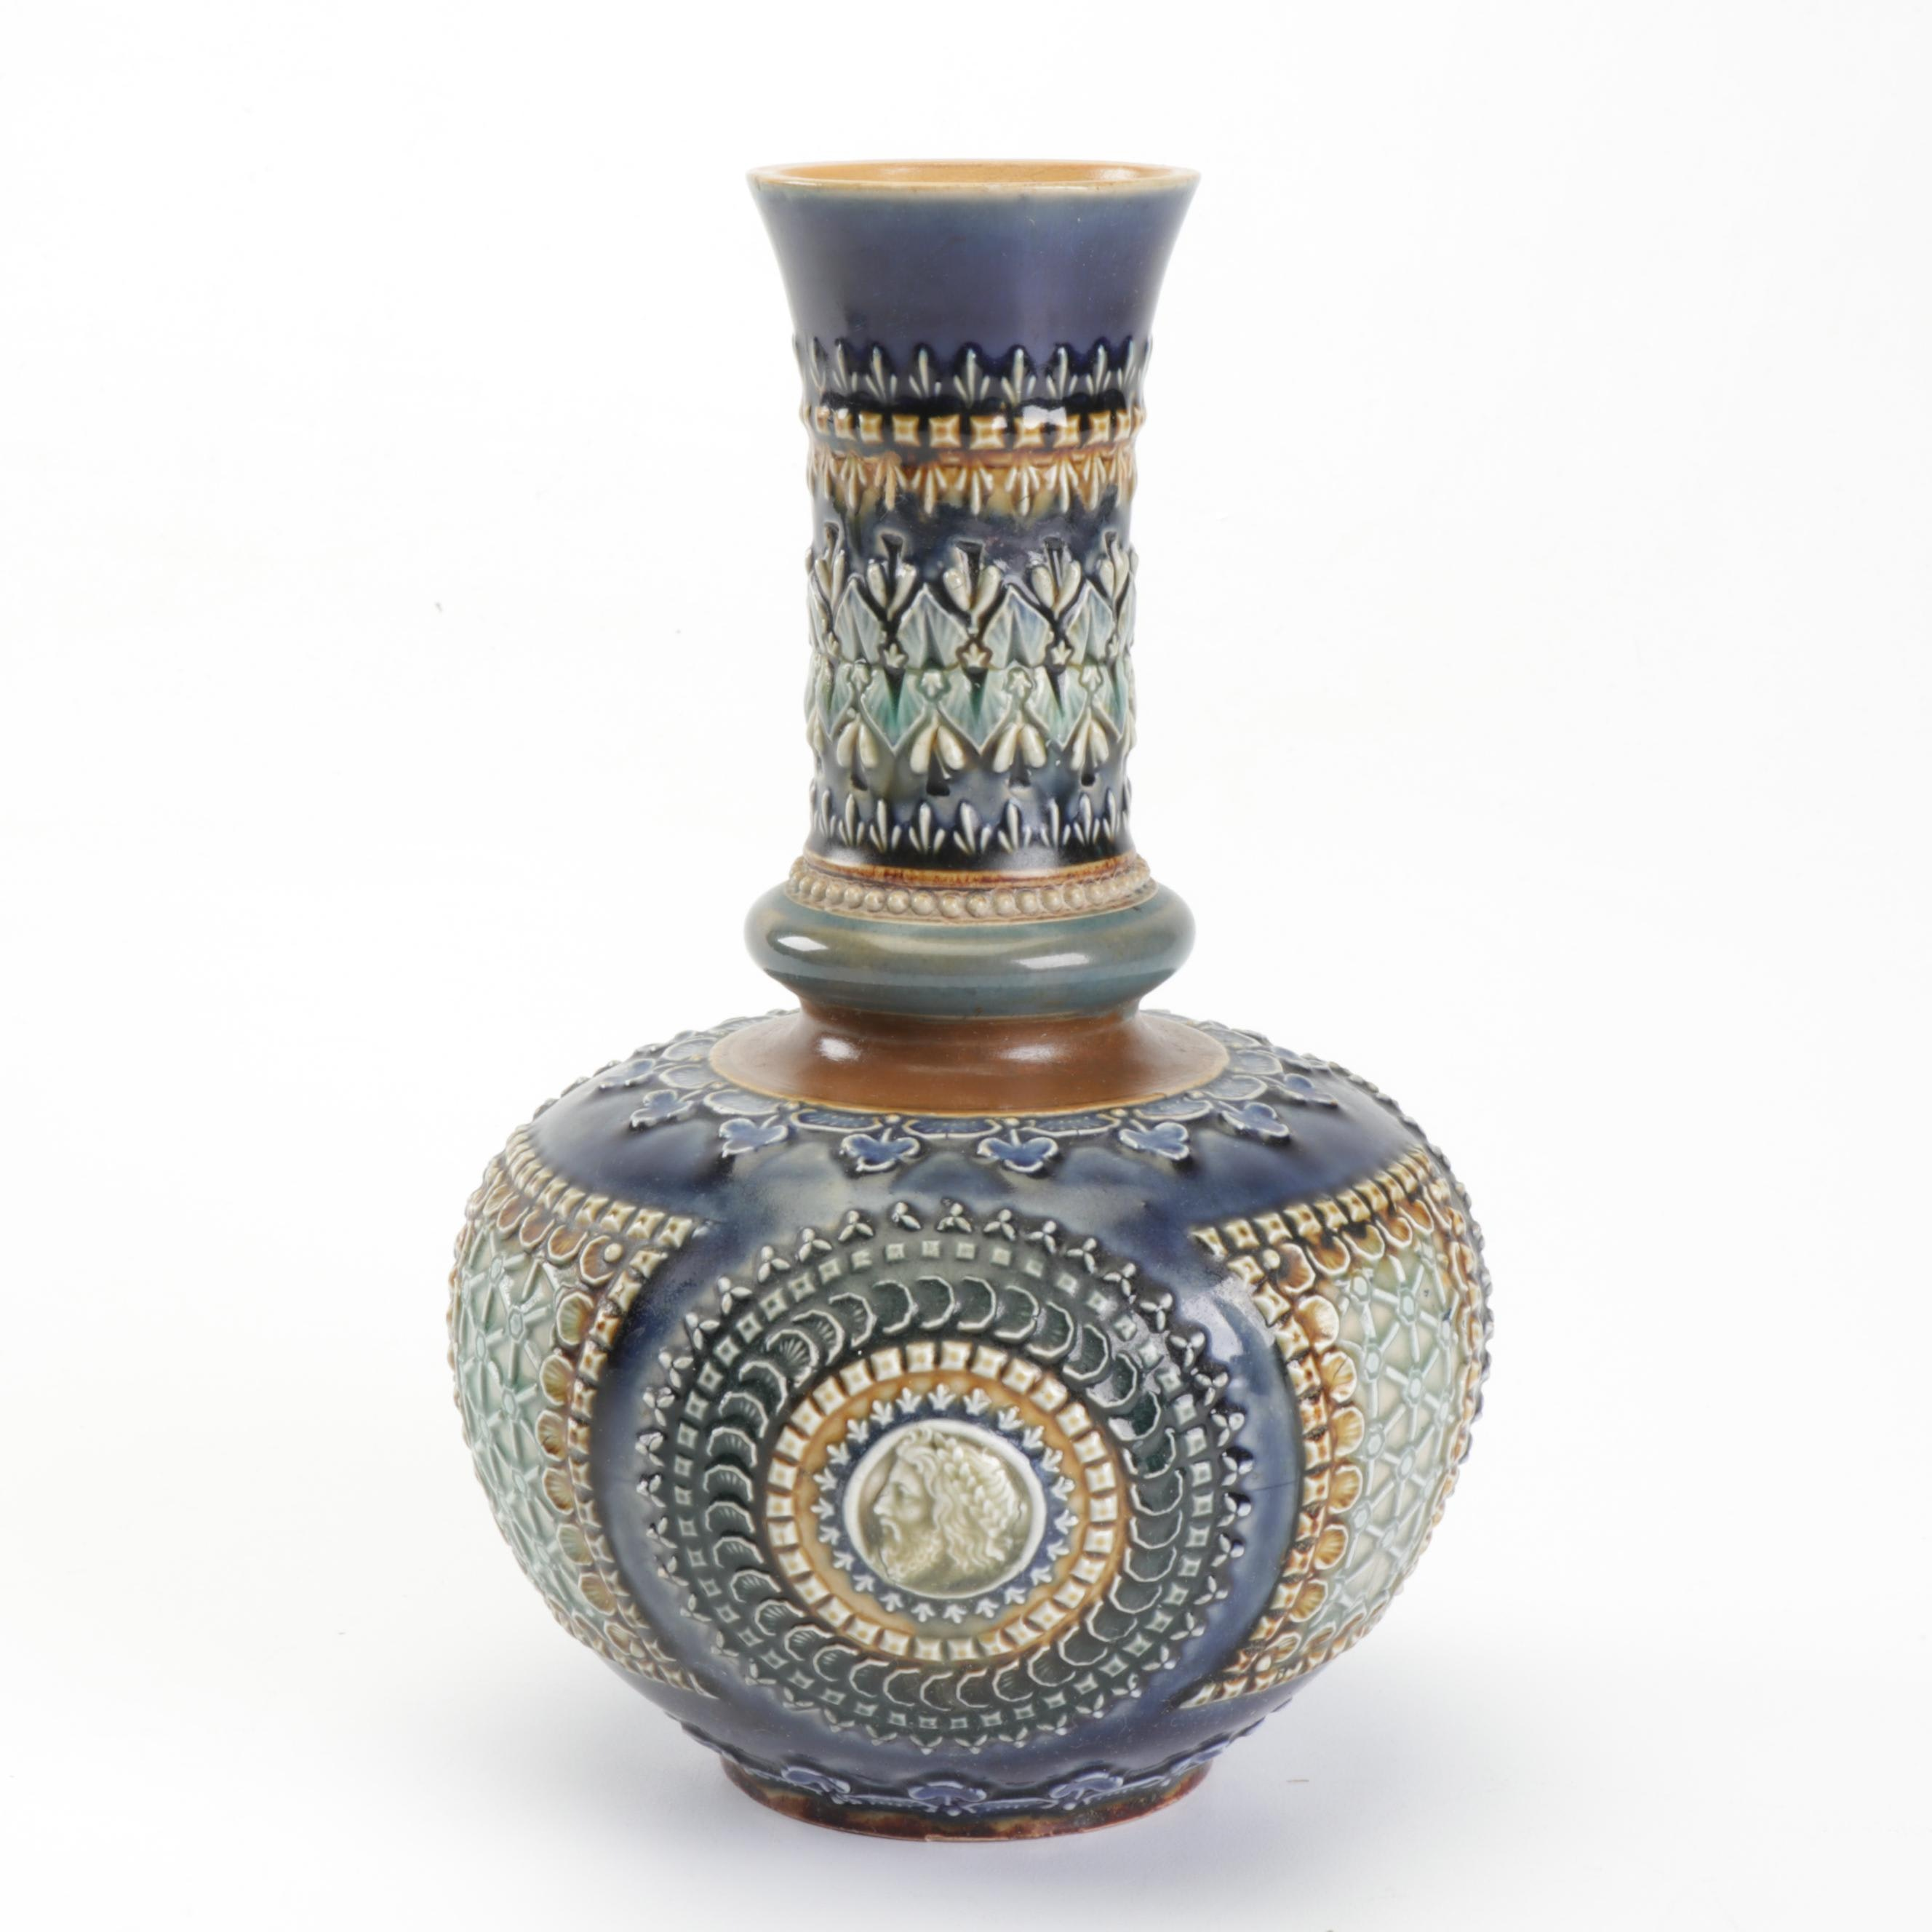 Doulton Lambeth Stoneware Vase, Late 19th Century